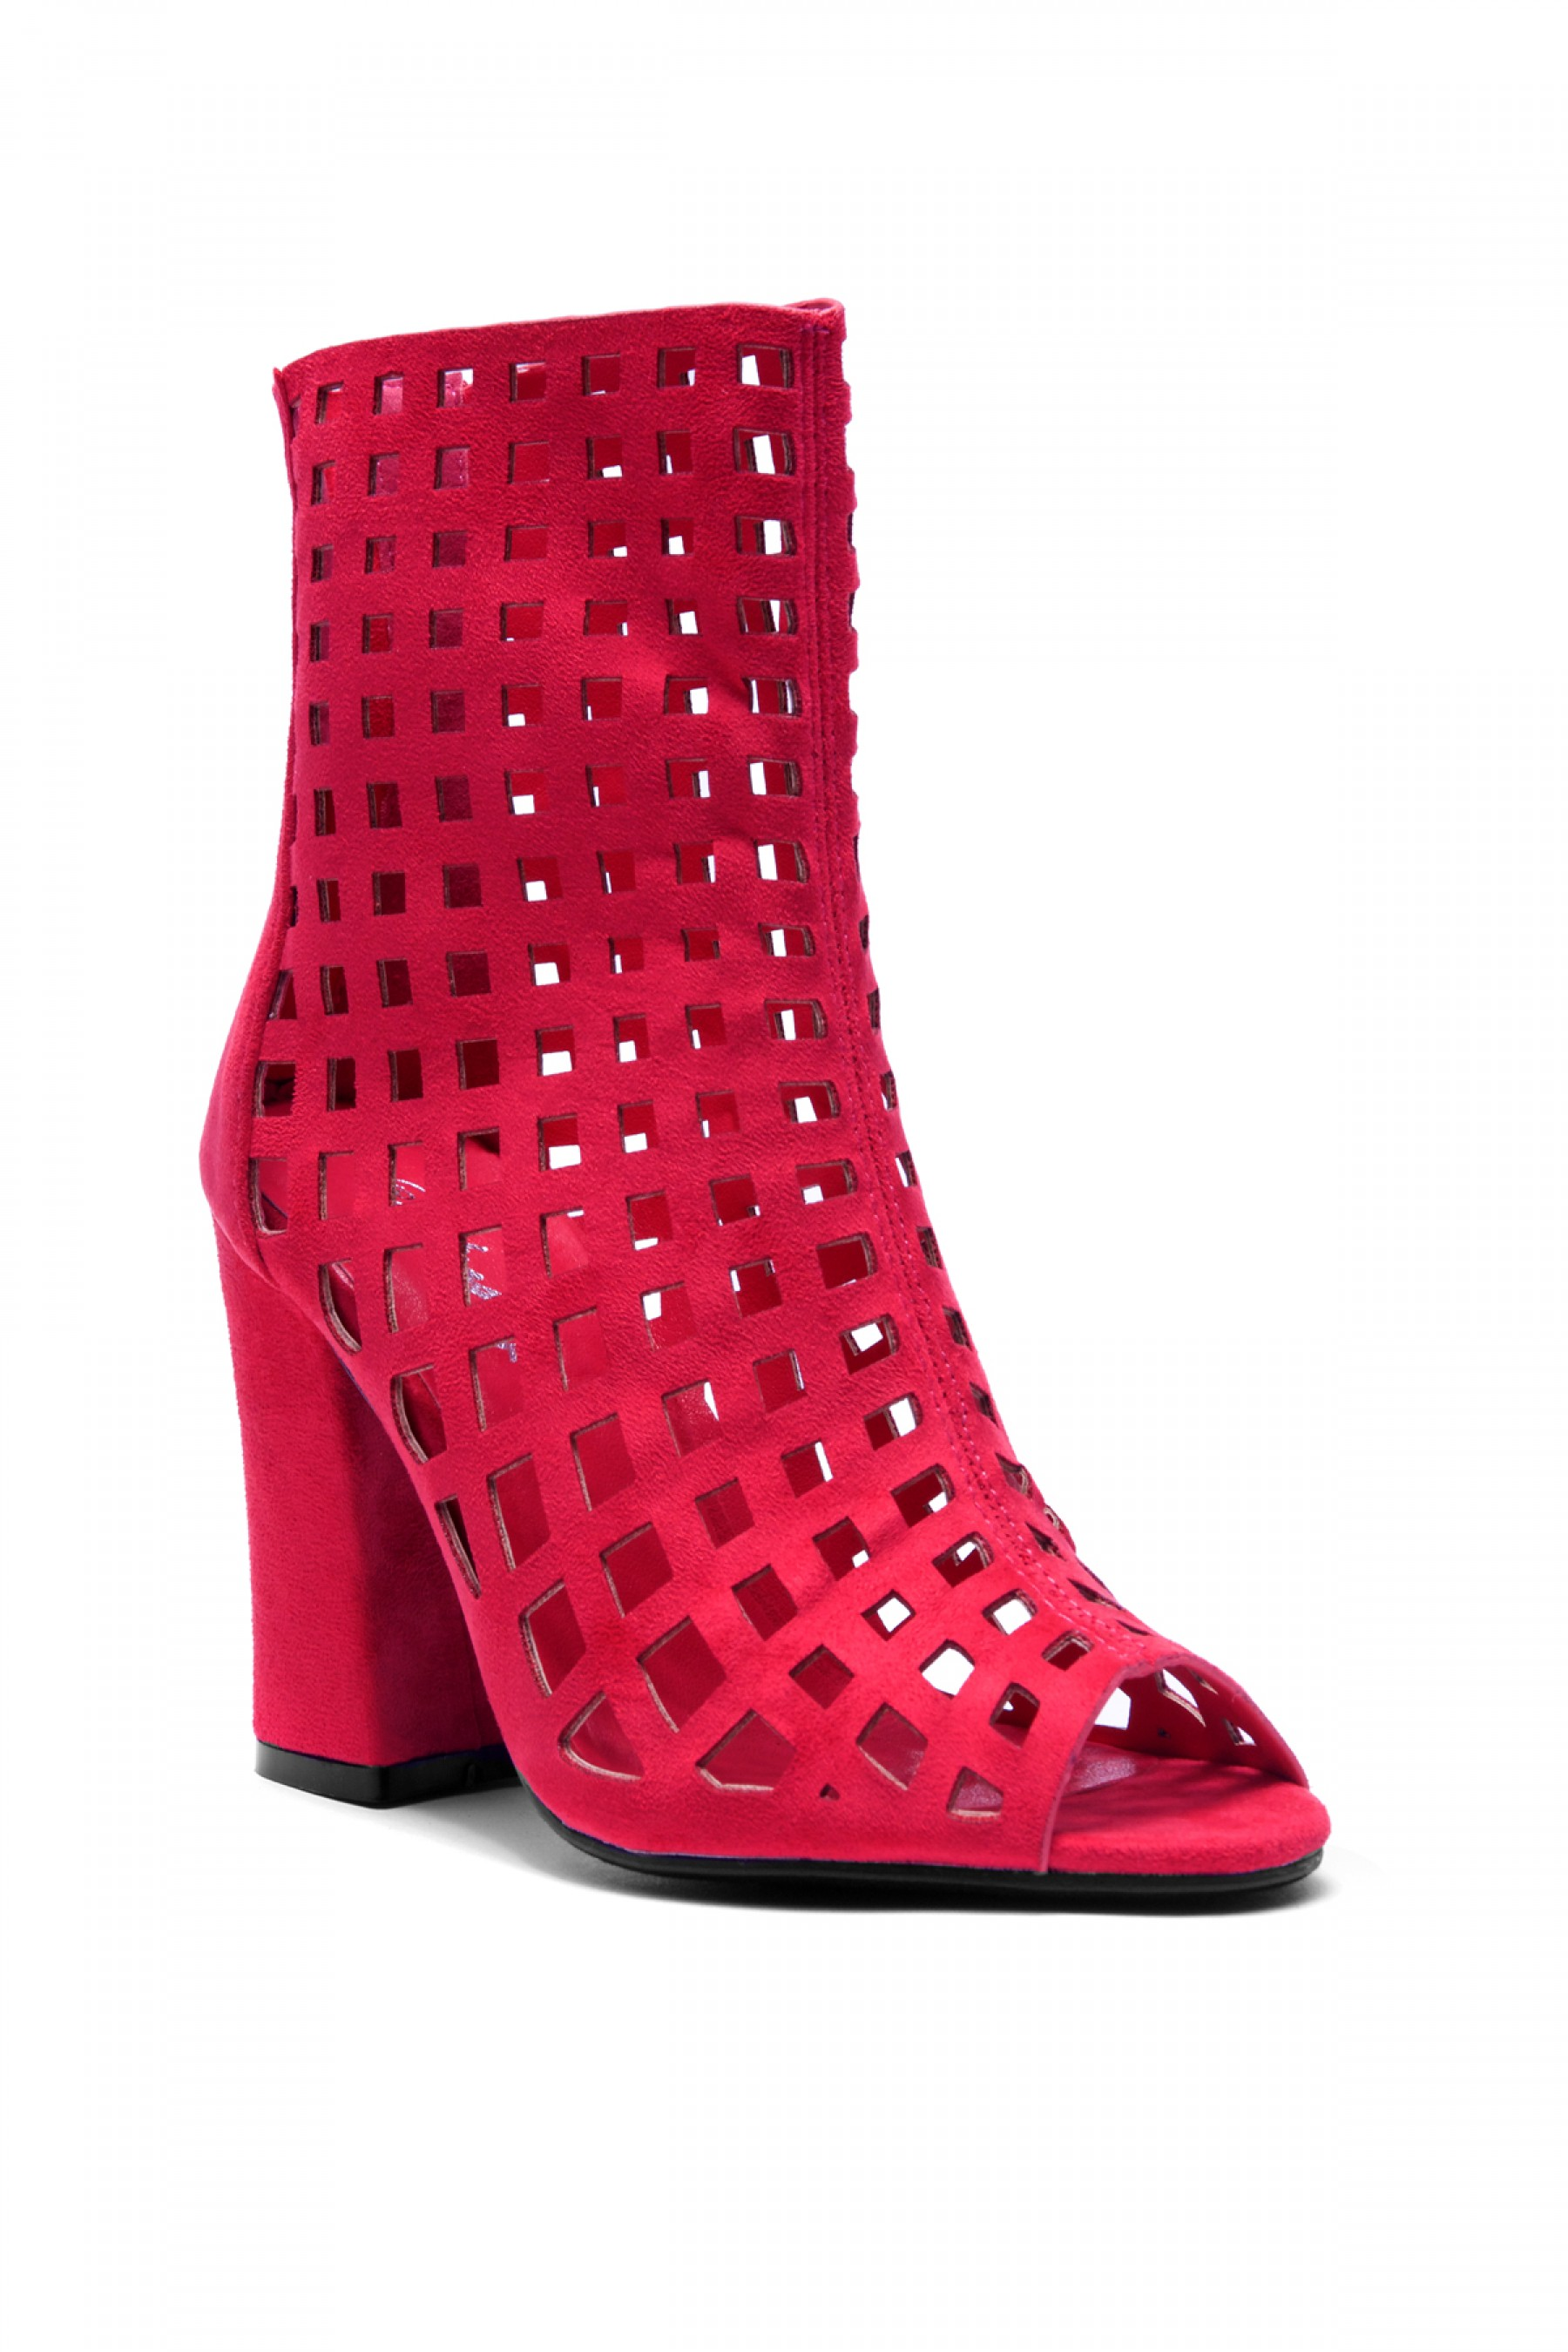 Women's Fuchsia Jerillan Chunky Heel Booties with elastic gusset wraparound detail at vamp